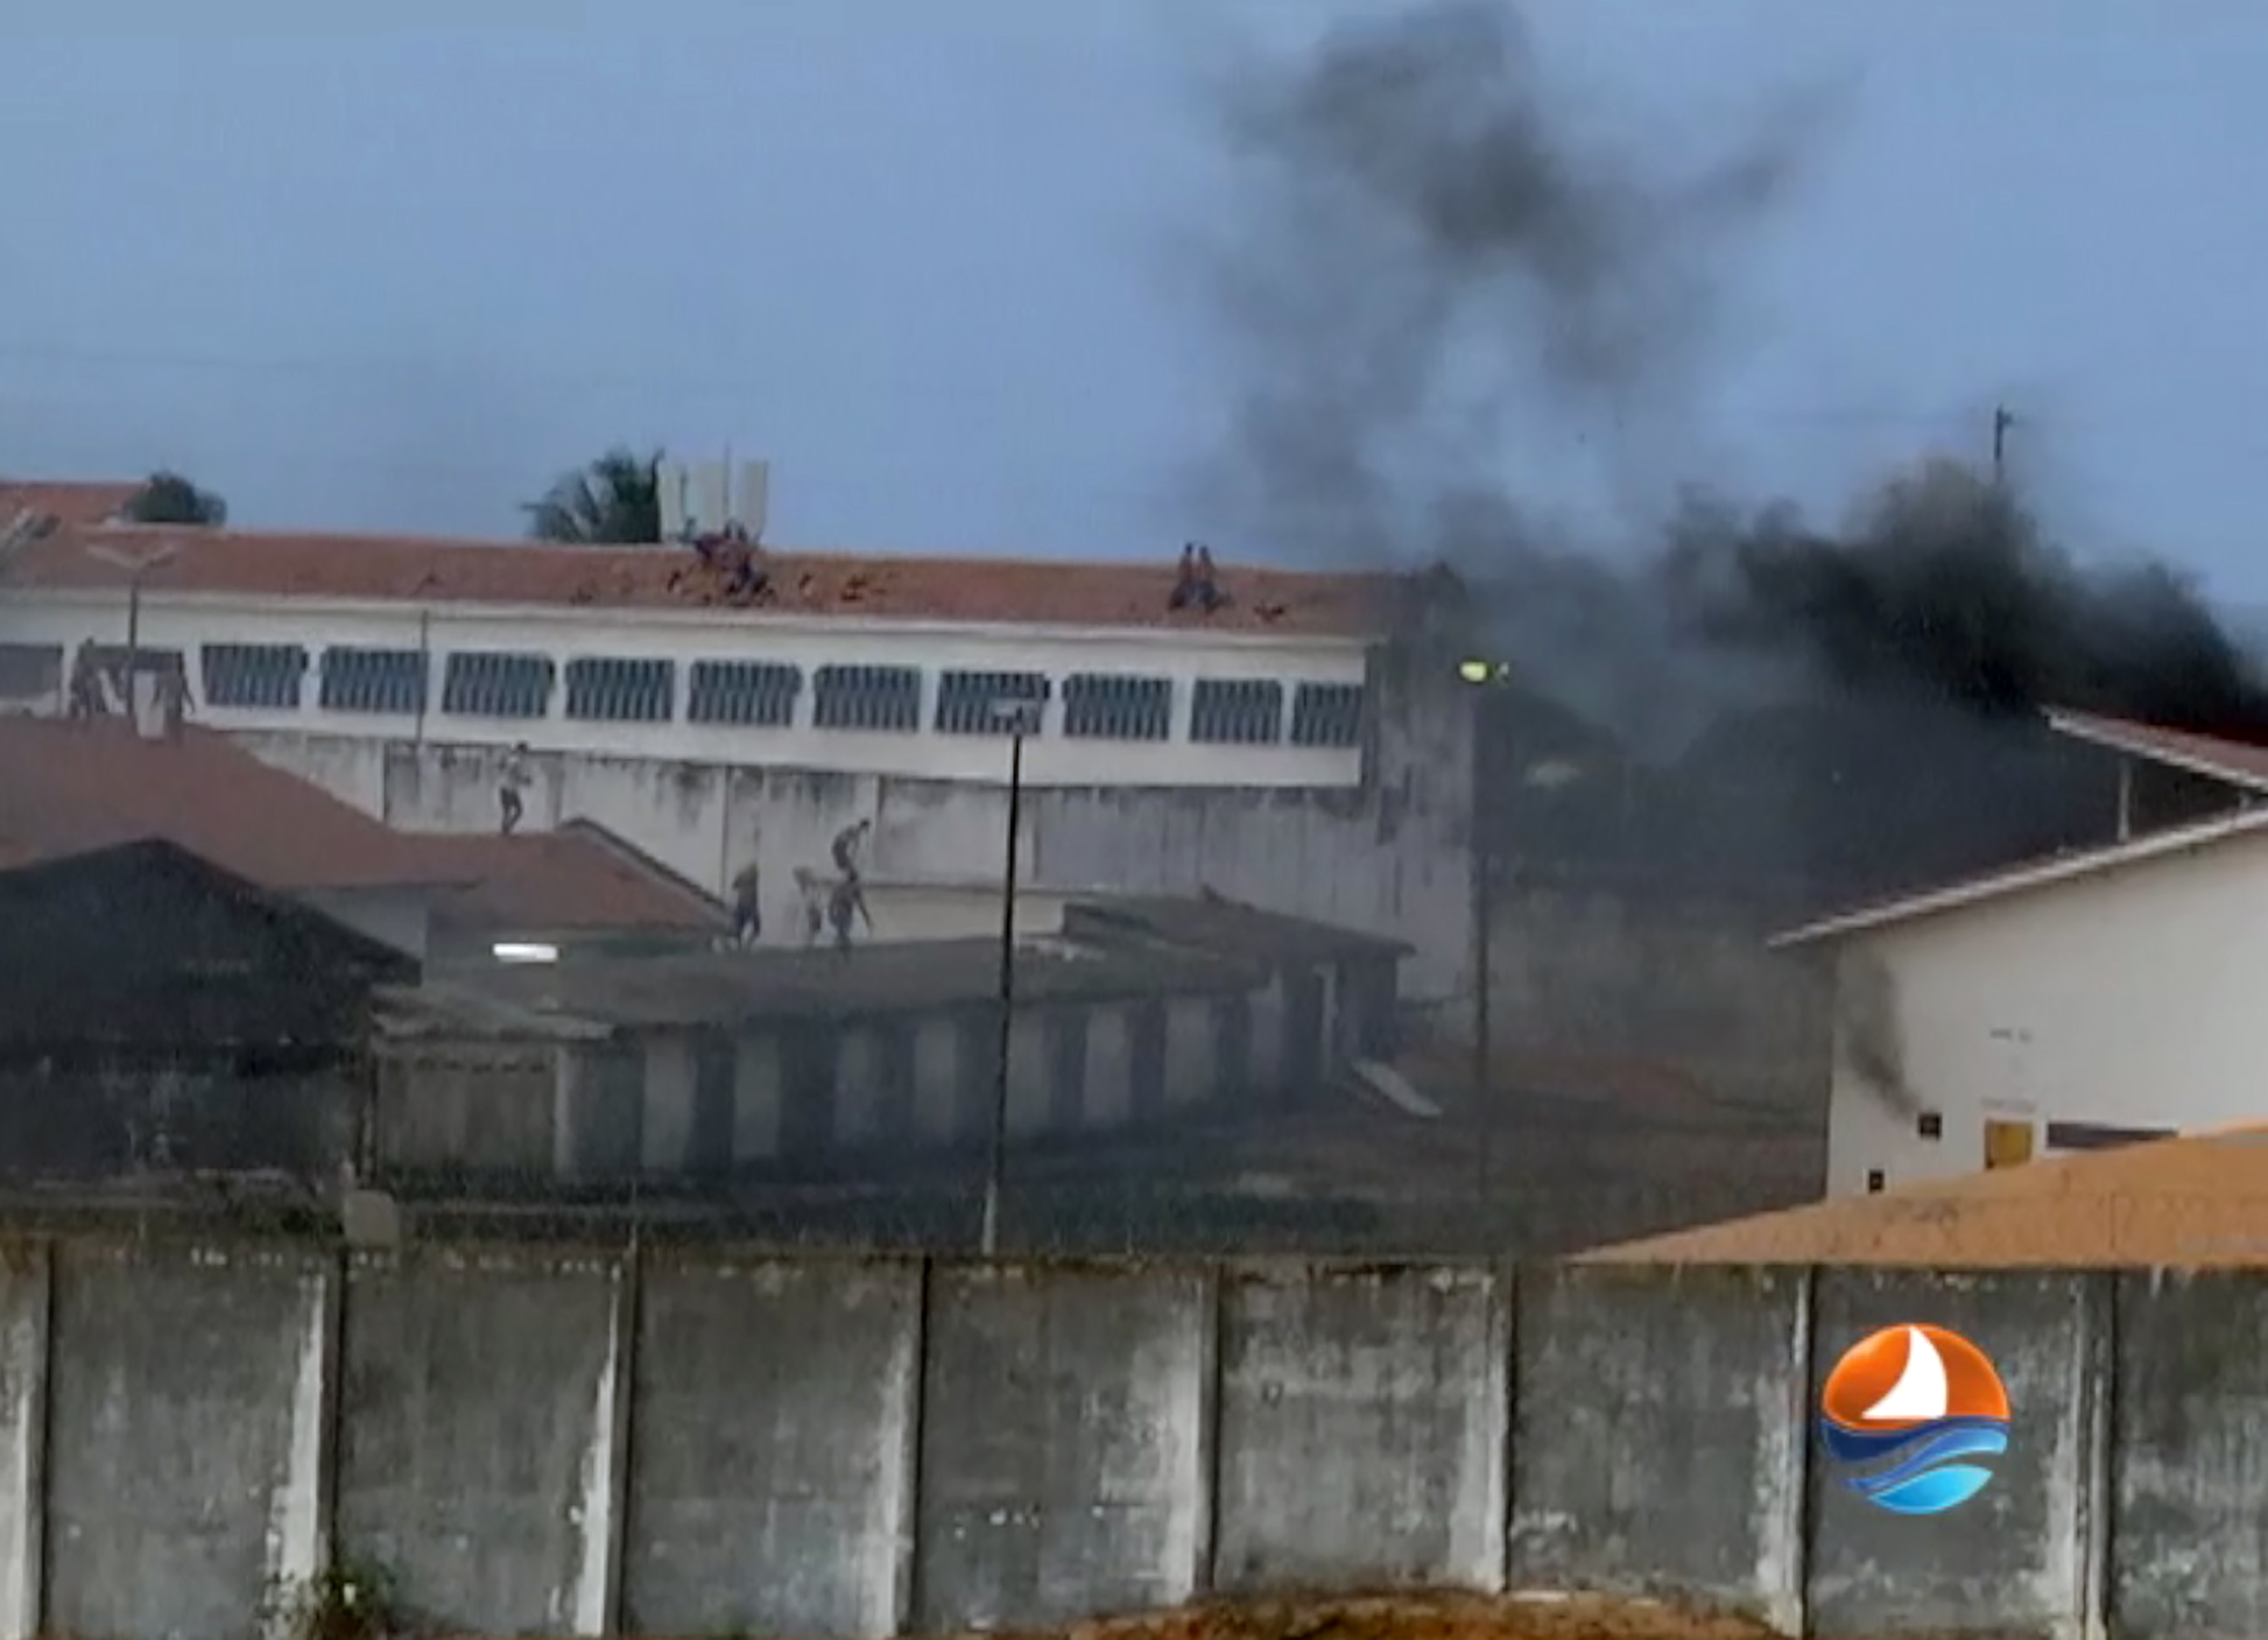 Brazil expects death toll from latest prison clash to rise